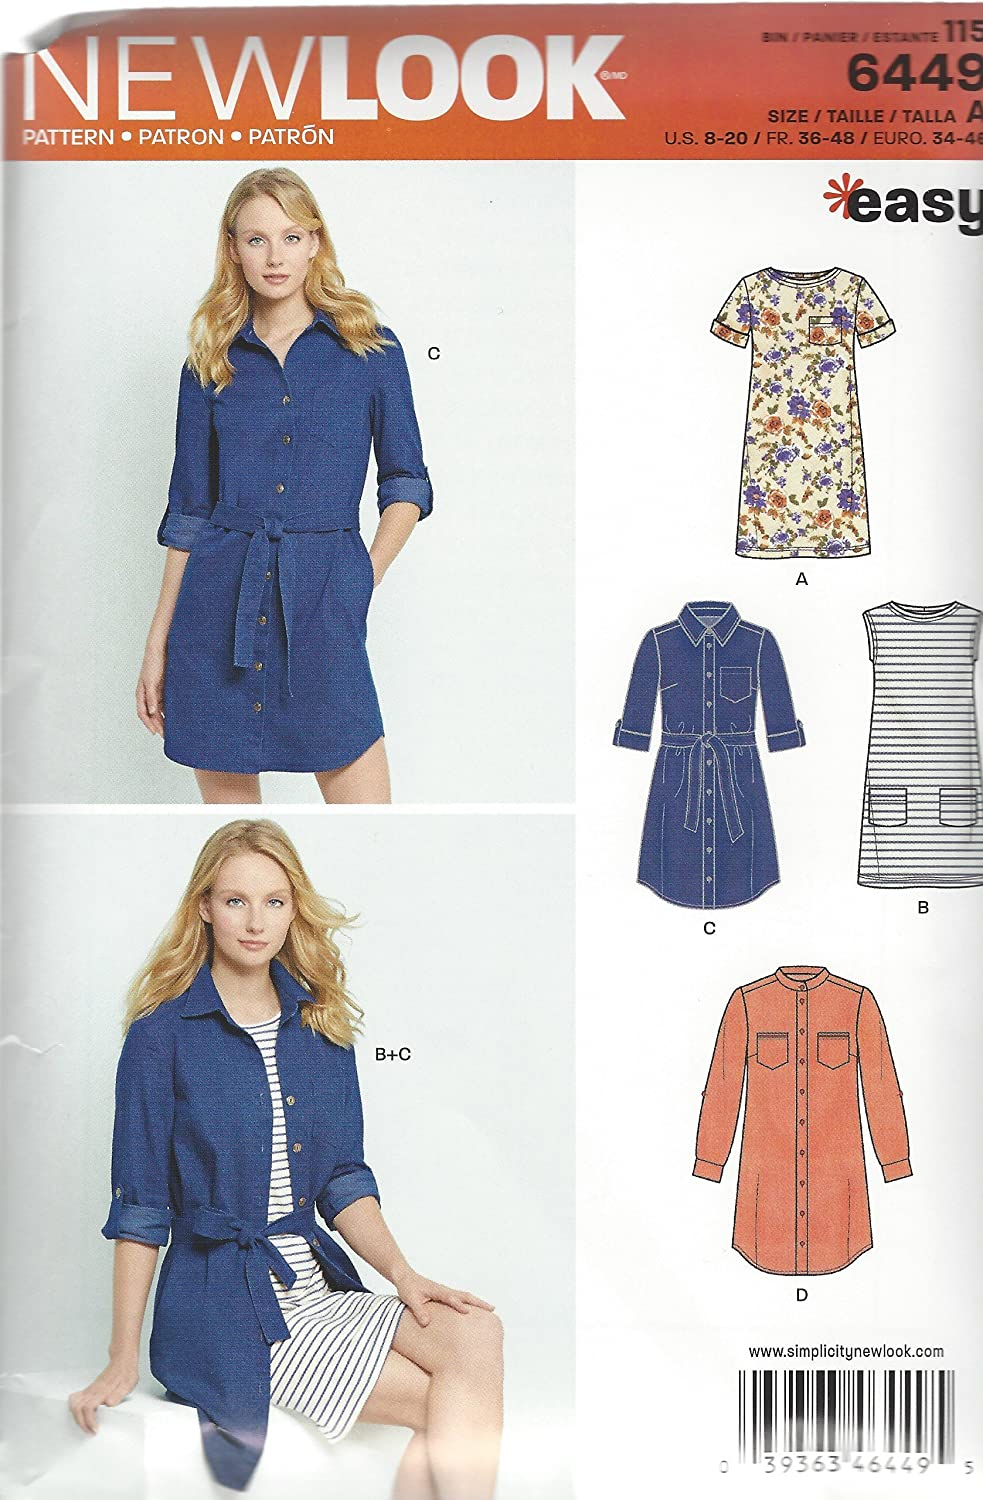 New Look Patterns Misses' Easy Shirt Dress and Knit Dress A (8-10-12-14-16-18-20) 6449